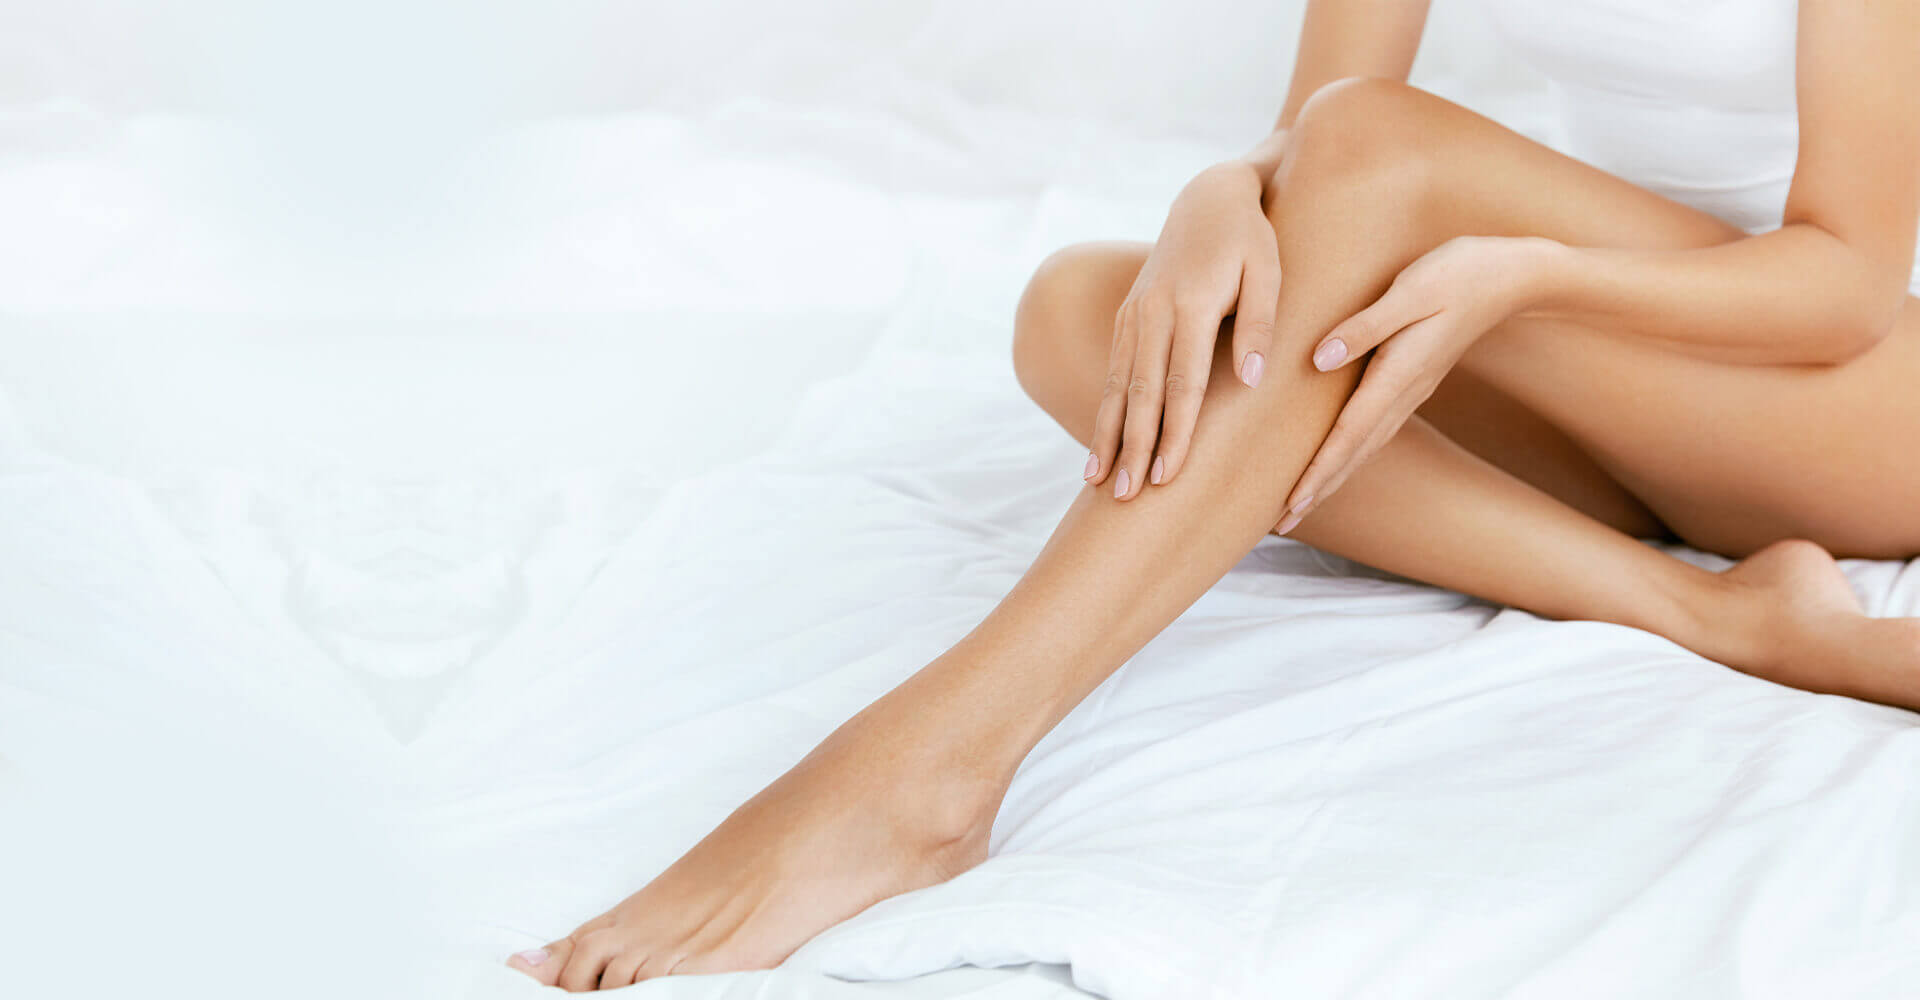 epilation definitive paris